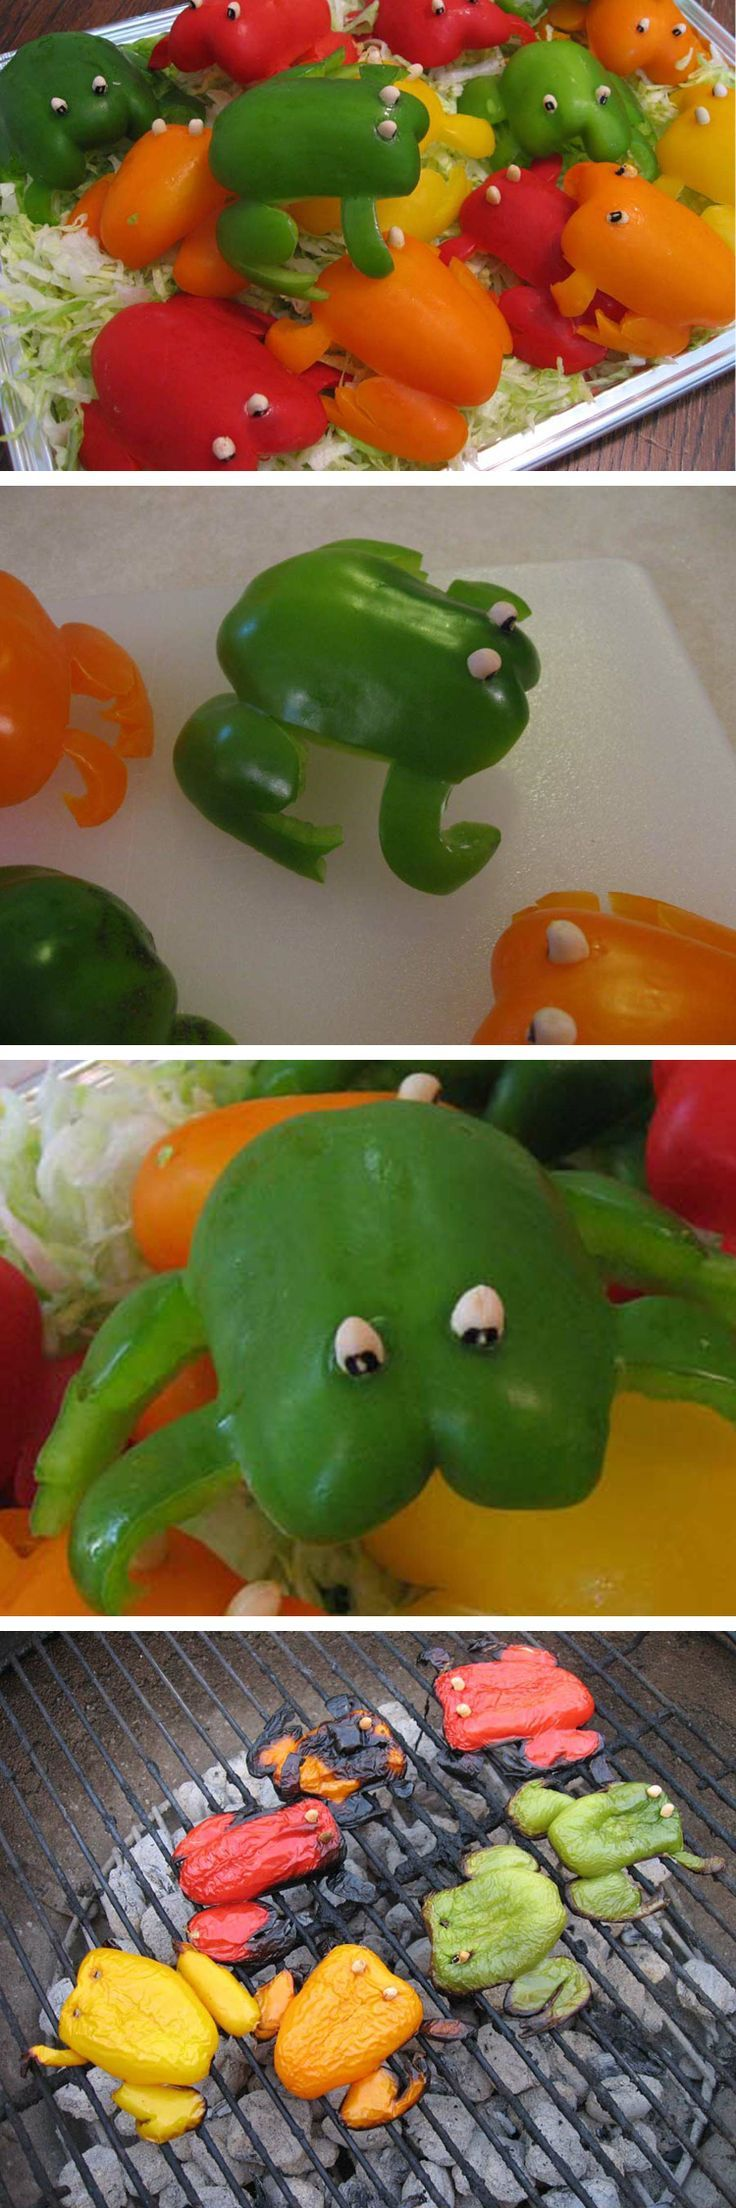 GRILLED PEPPER FROGS: OMG!!! My kids would get a kick out of these!